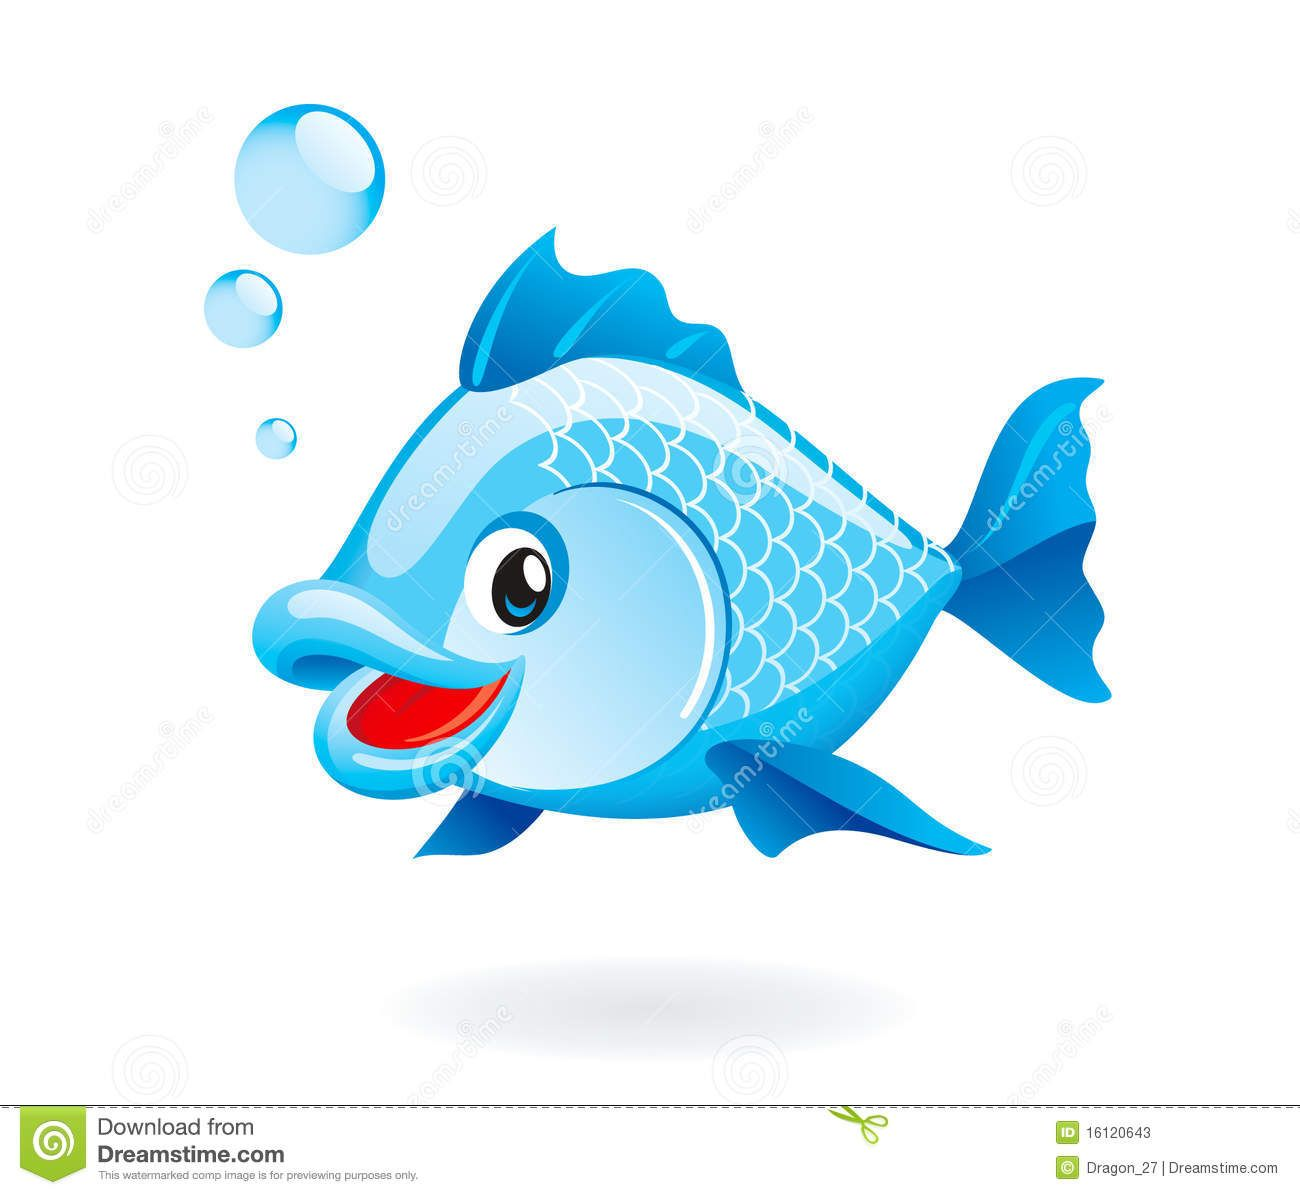 Cartoon Fish Download From Over 29 Million High Quality Stock Photos Images Vectors Sign Up For Free Today Image Cartoon Fish Cute Cartoon Fish Cartoon